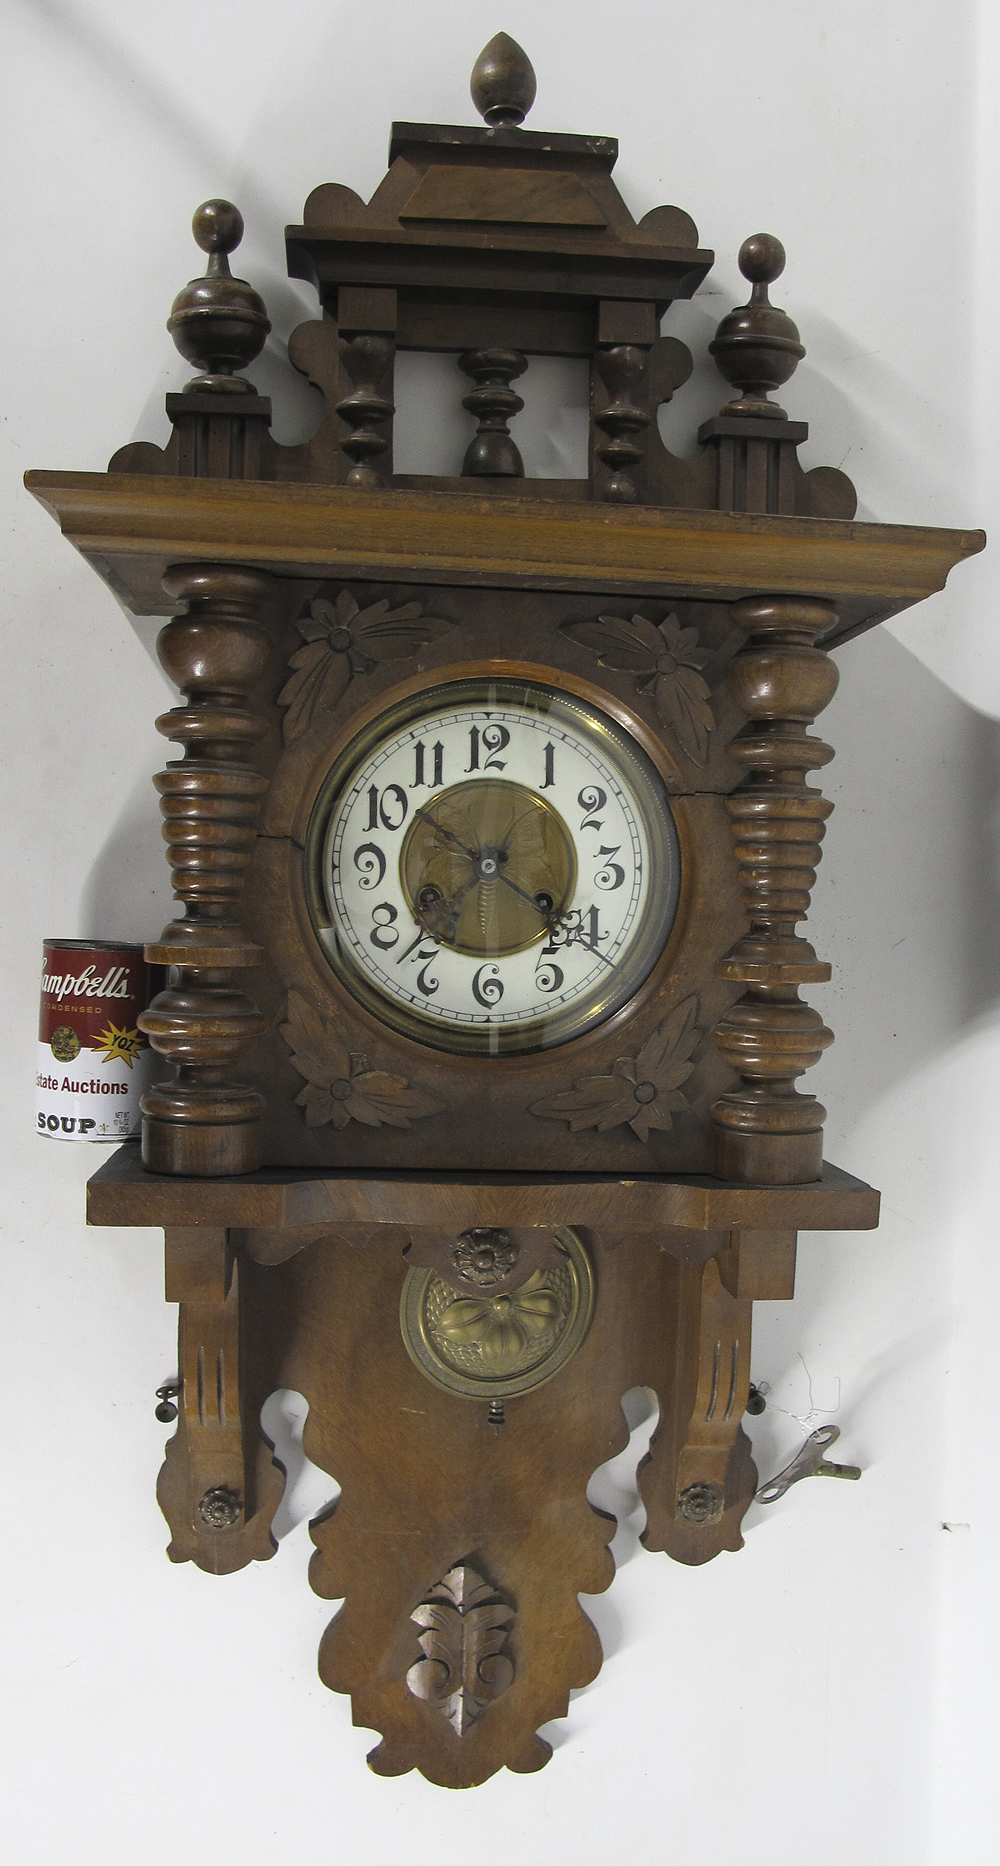 Dating mauthe clock